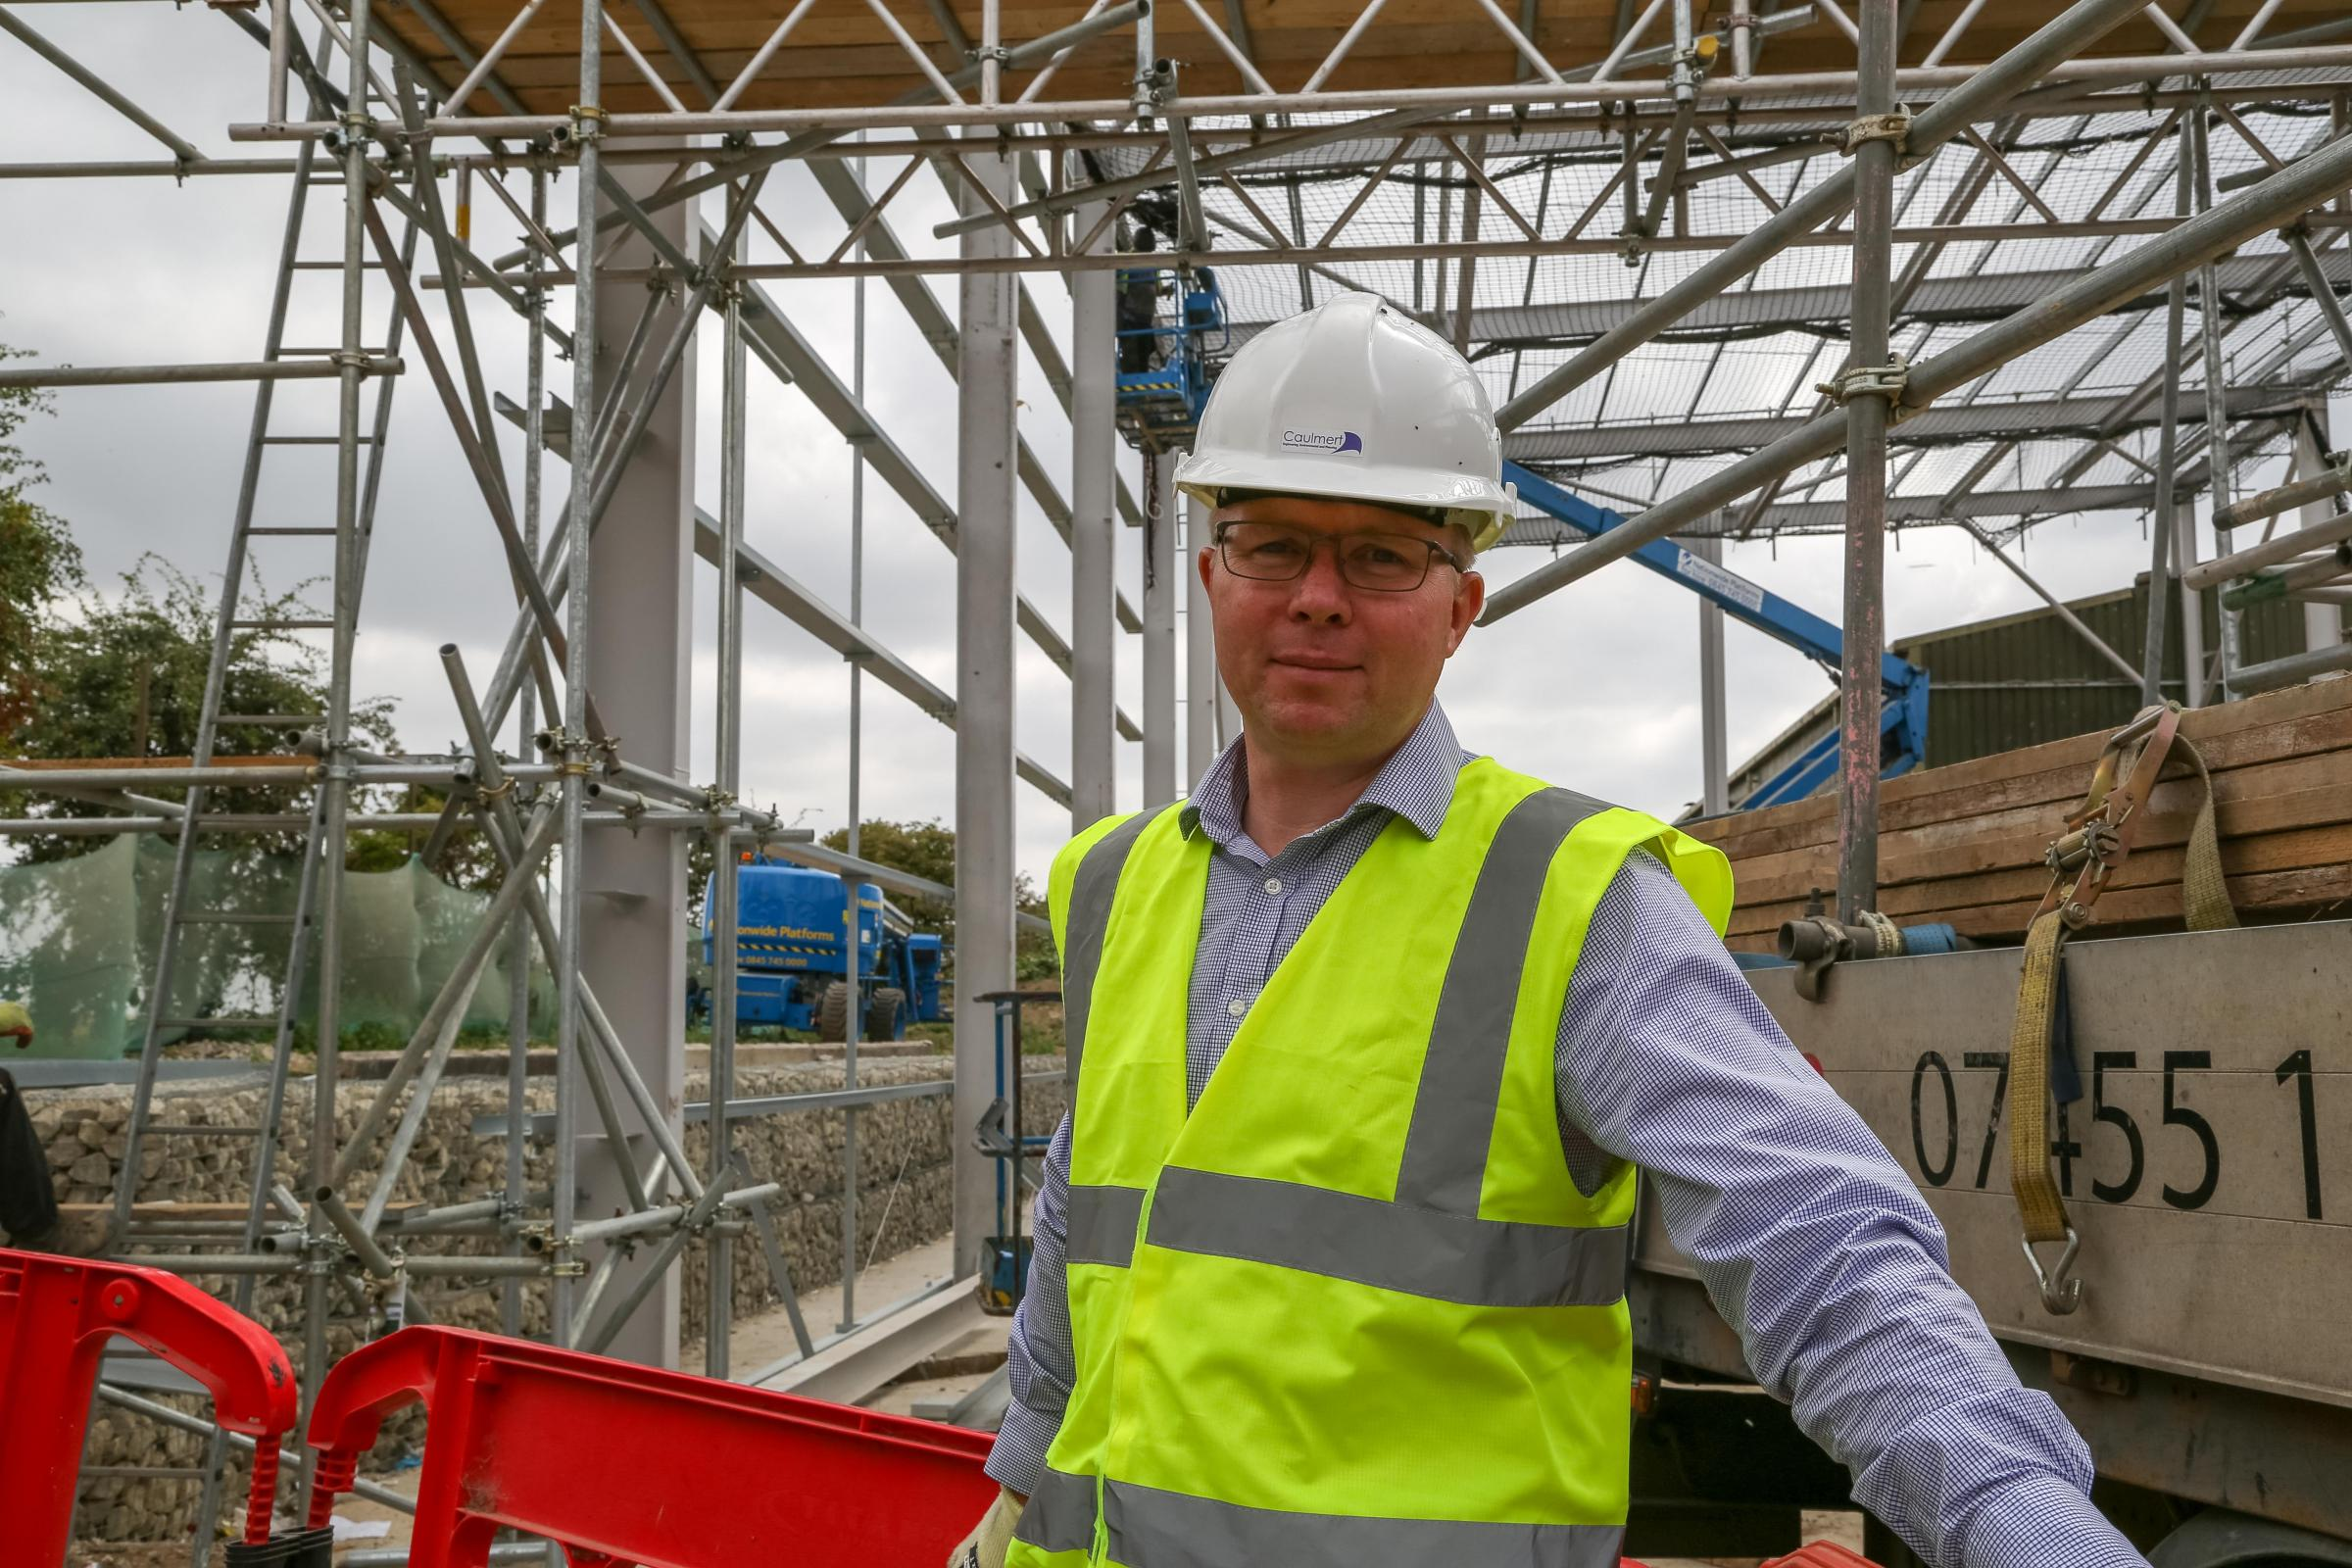 Peter Dawson, associate director of structural engineering at Caulmert, at the Viridor Crayford MRF Fibre Recovery site. Picture: Ruth Knight